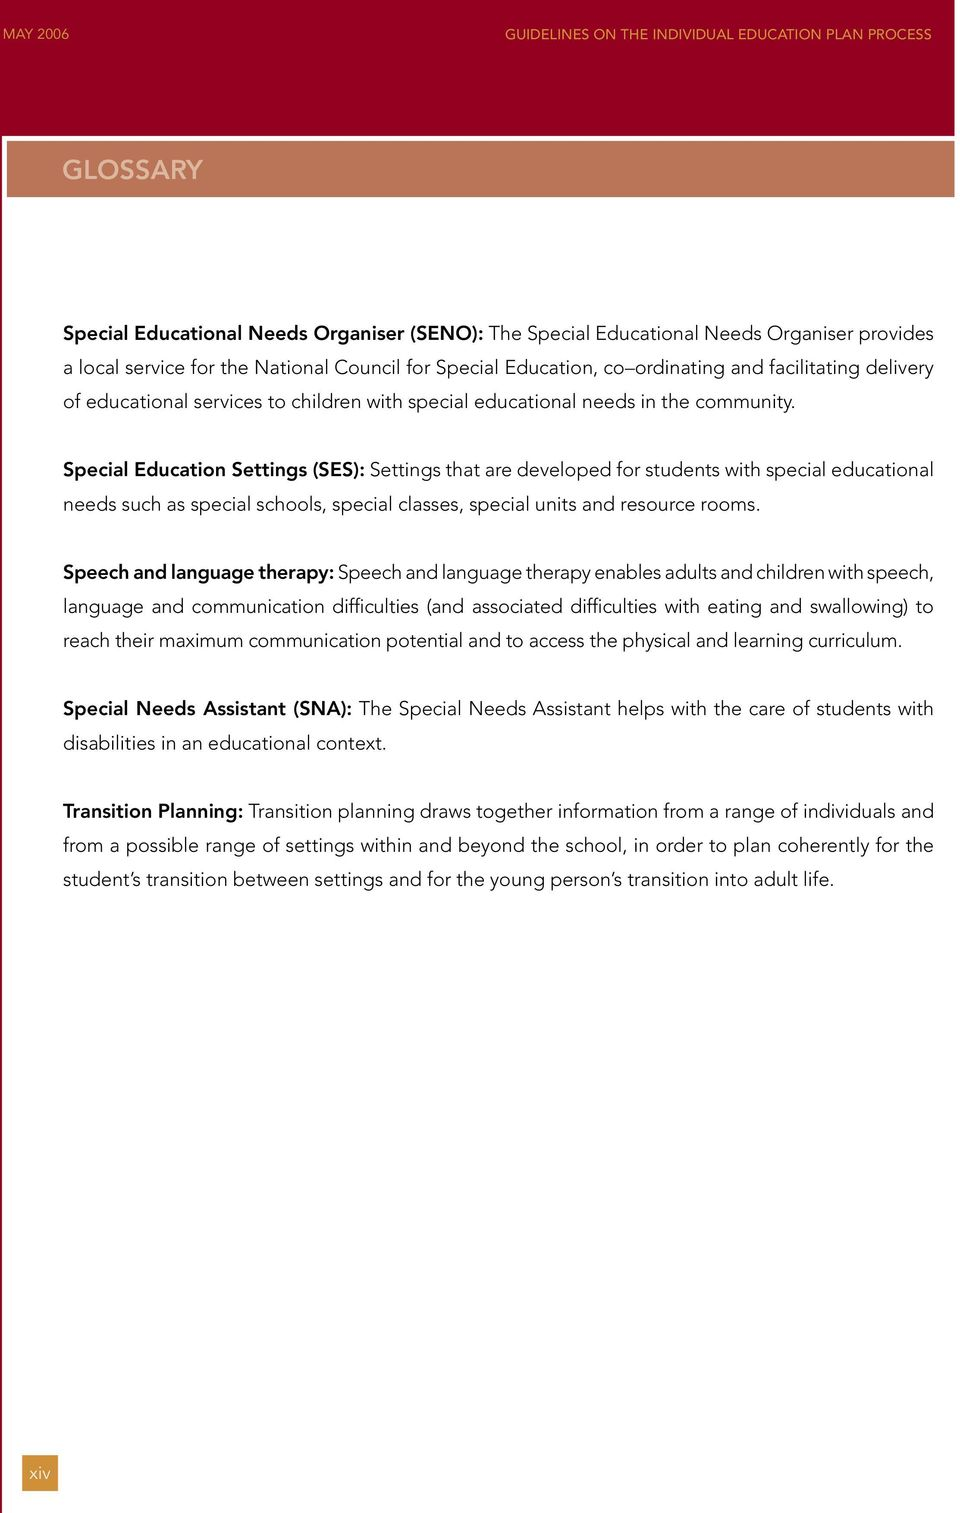 Special Education Settings (SES): Settings that are developed for students with special educational needs such as special schools, special classes, special units and resource rooms.